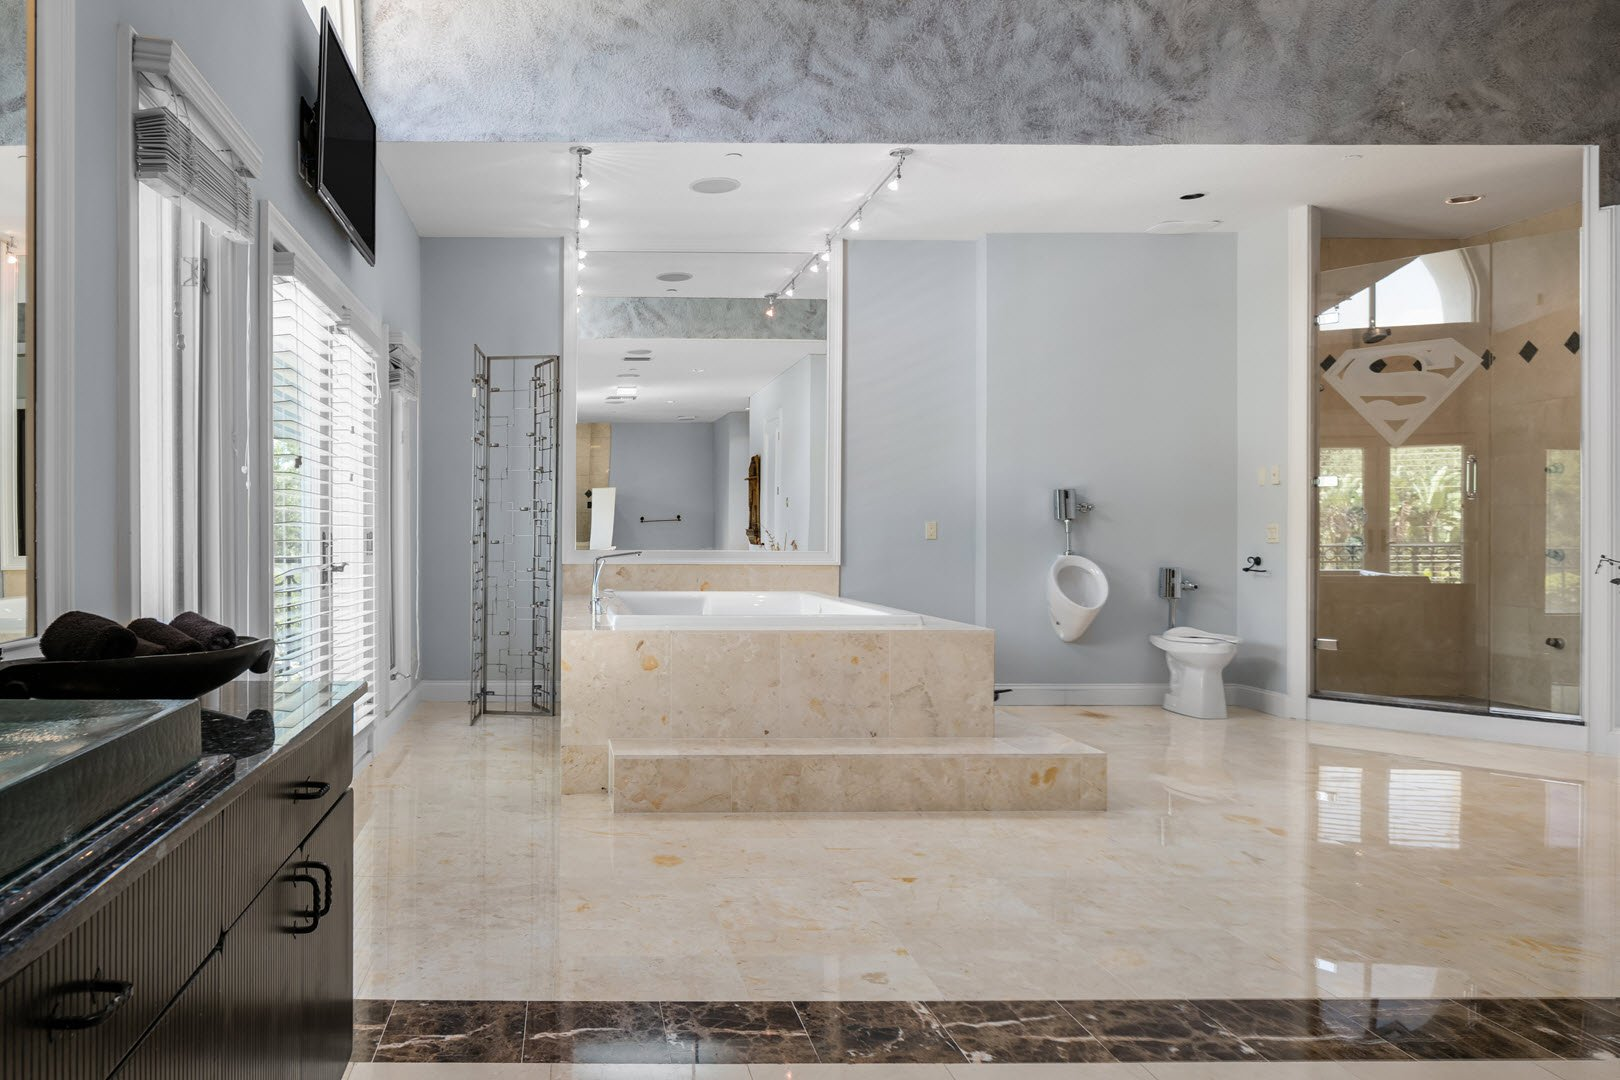 Shaq Mansion in Florida For Sale - Bathroom